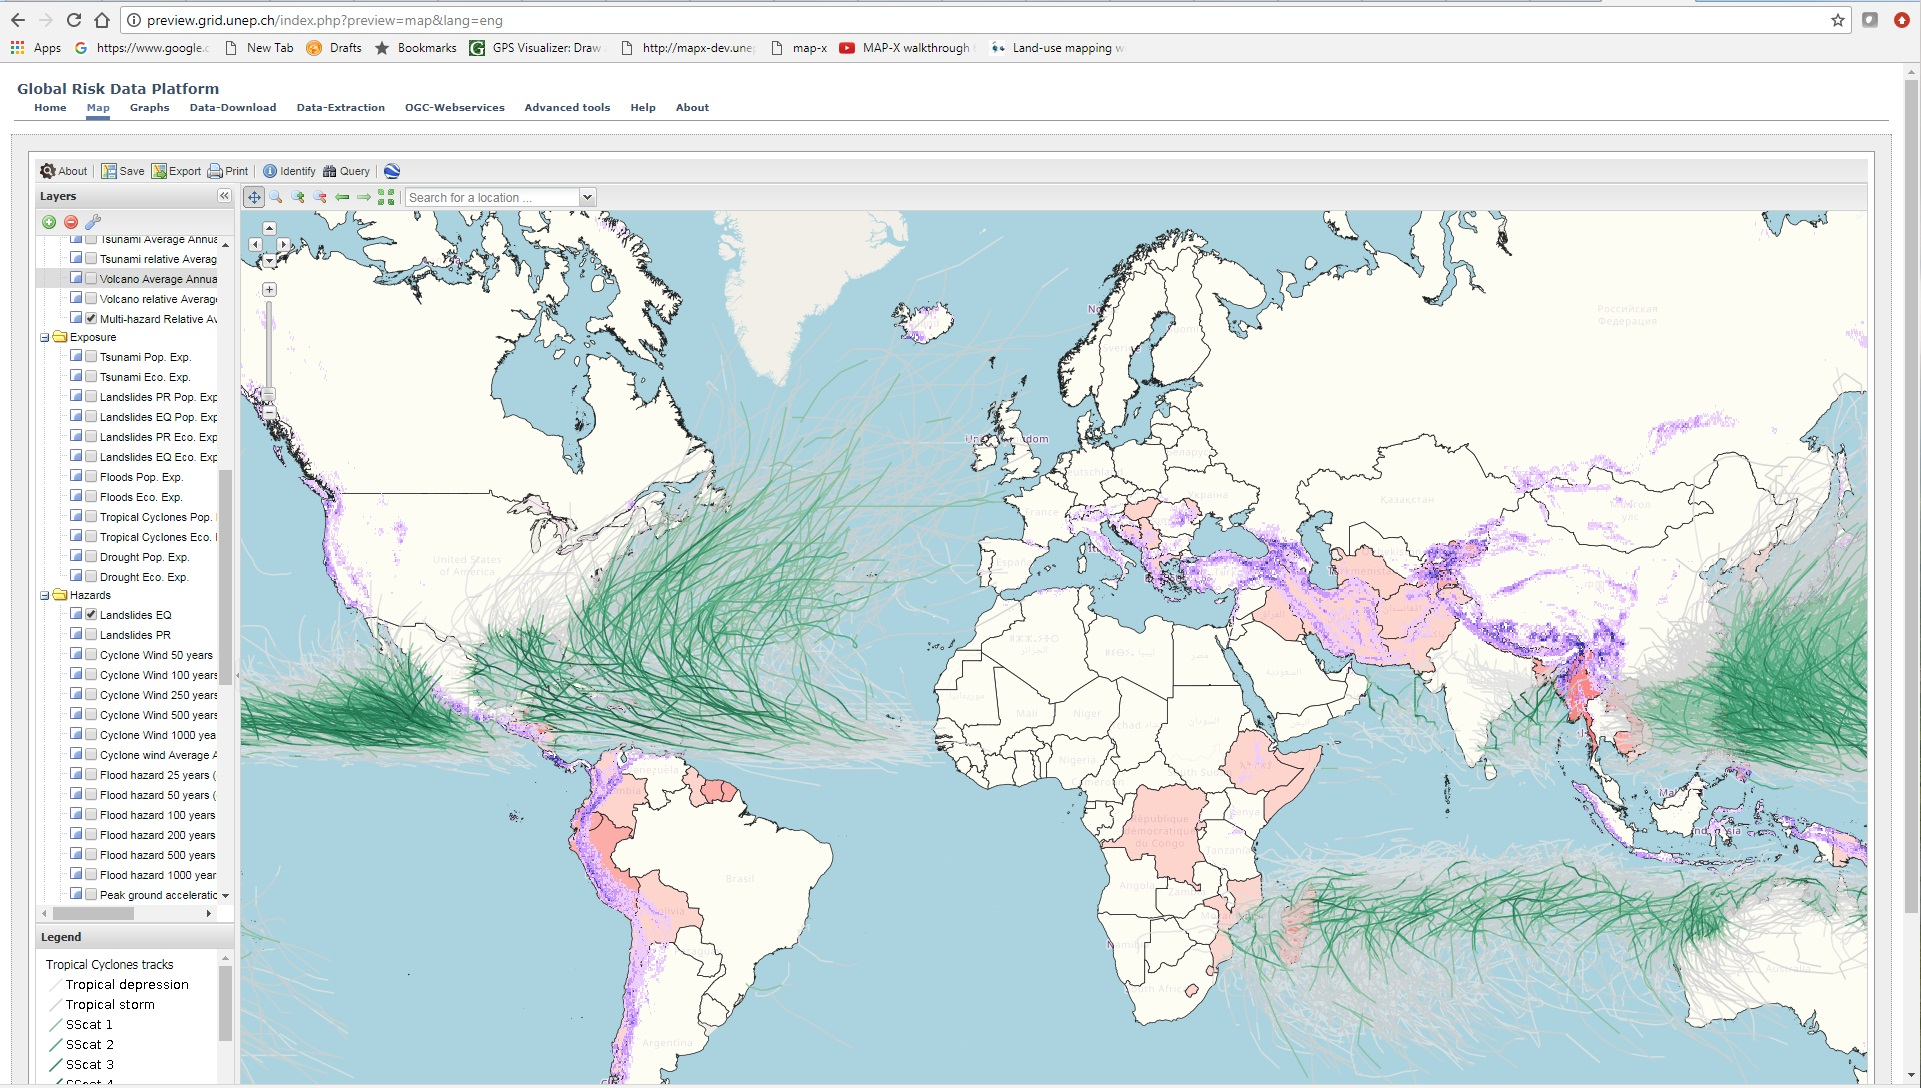 Global Risk Data Platform Screenshot